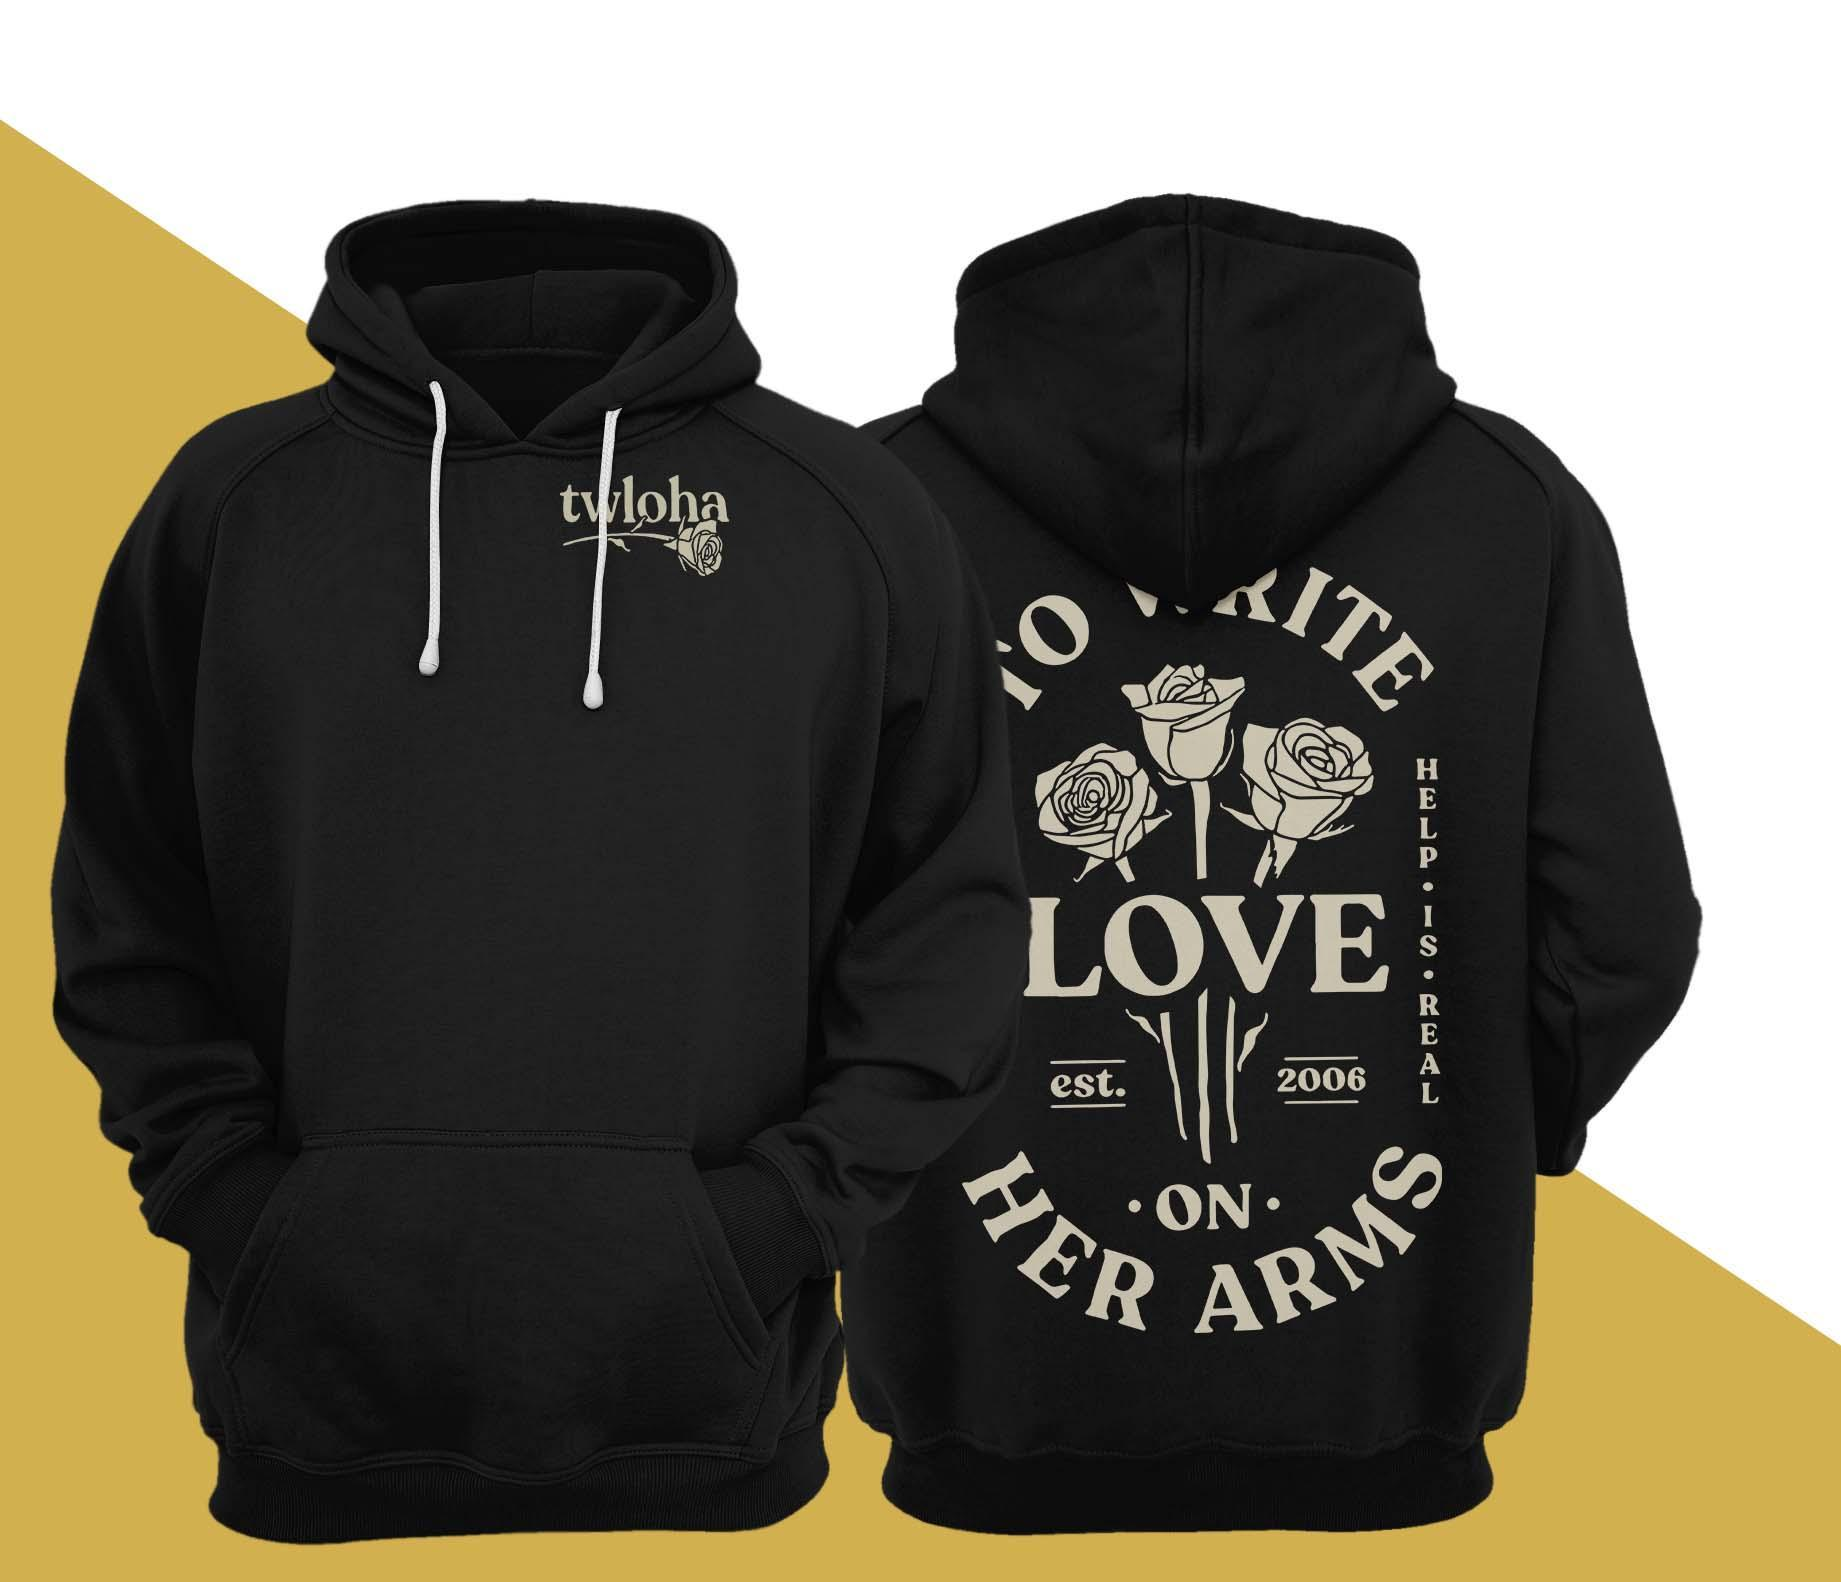 Twloha To Write Love On Her Arms Hoodie